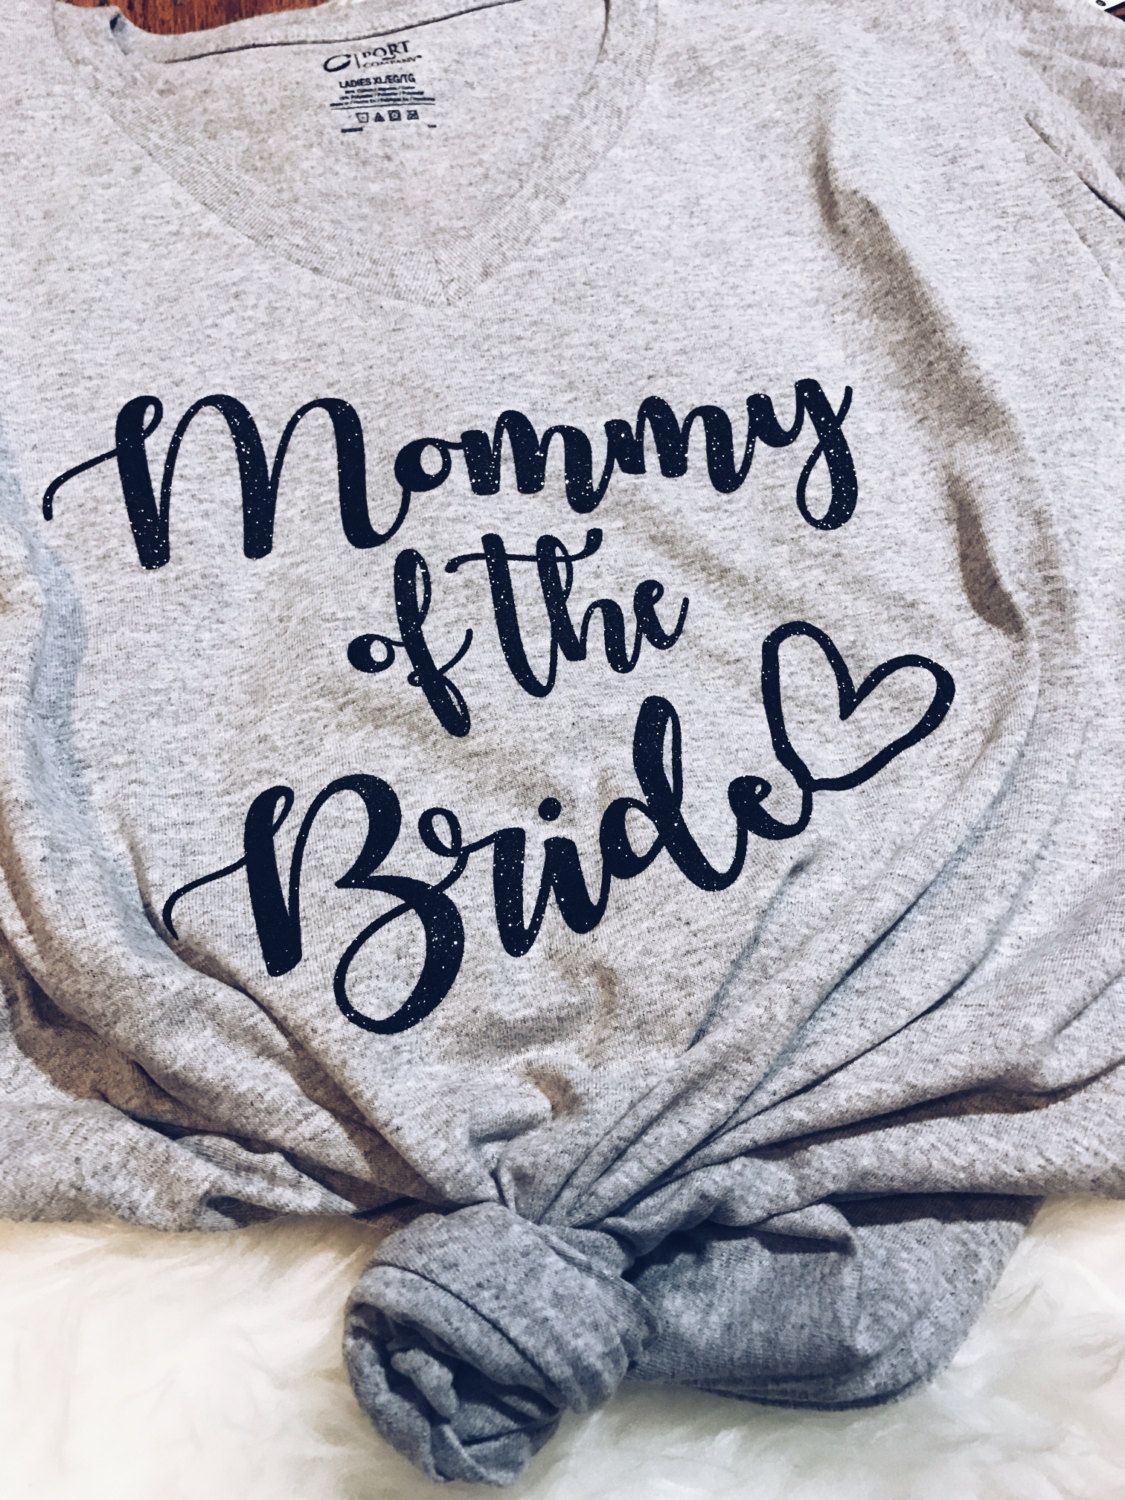 2b47d5b40 Mother of the Bride T Shirt | Mother of the Groom T Shirt  littlebrownnsuitcase.com littlebrownnsuitcase